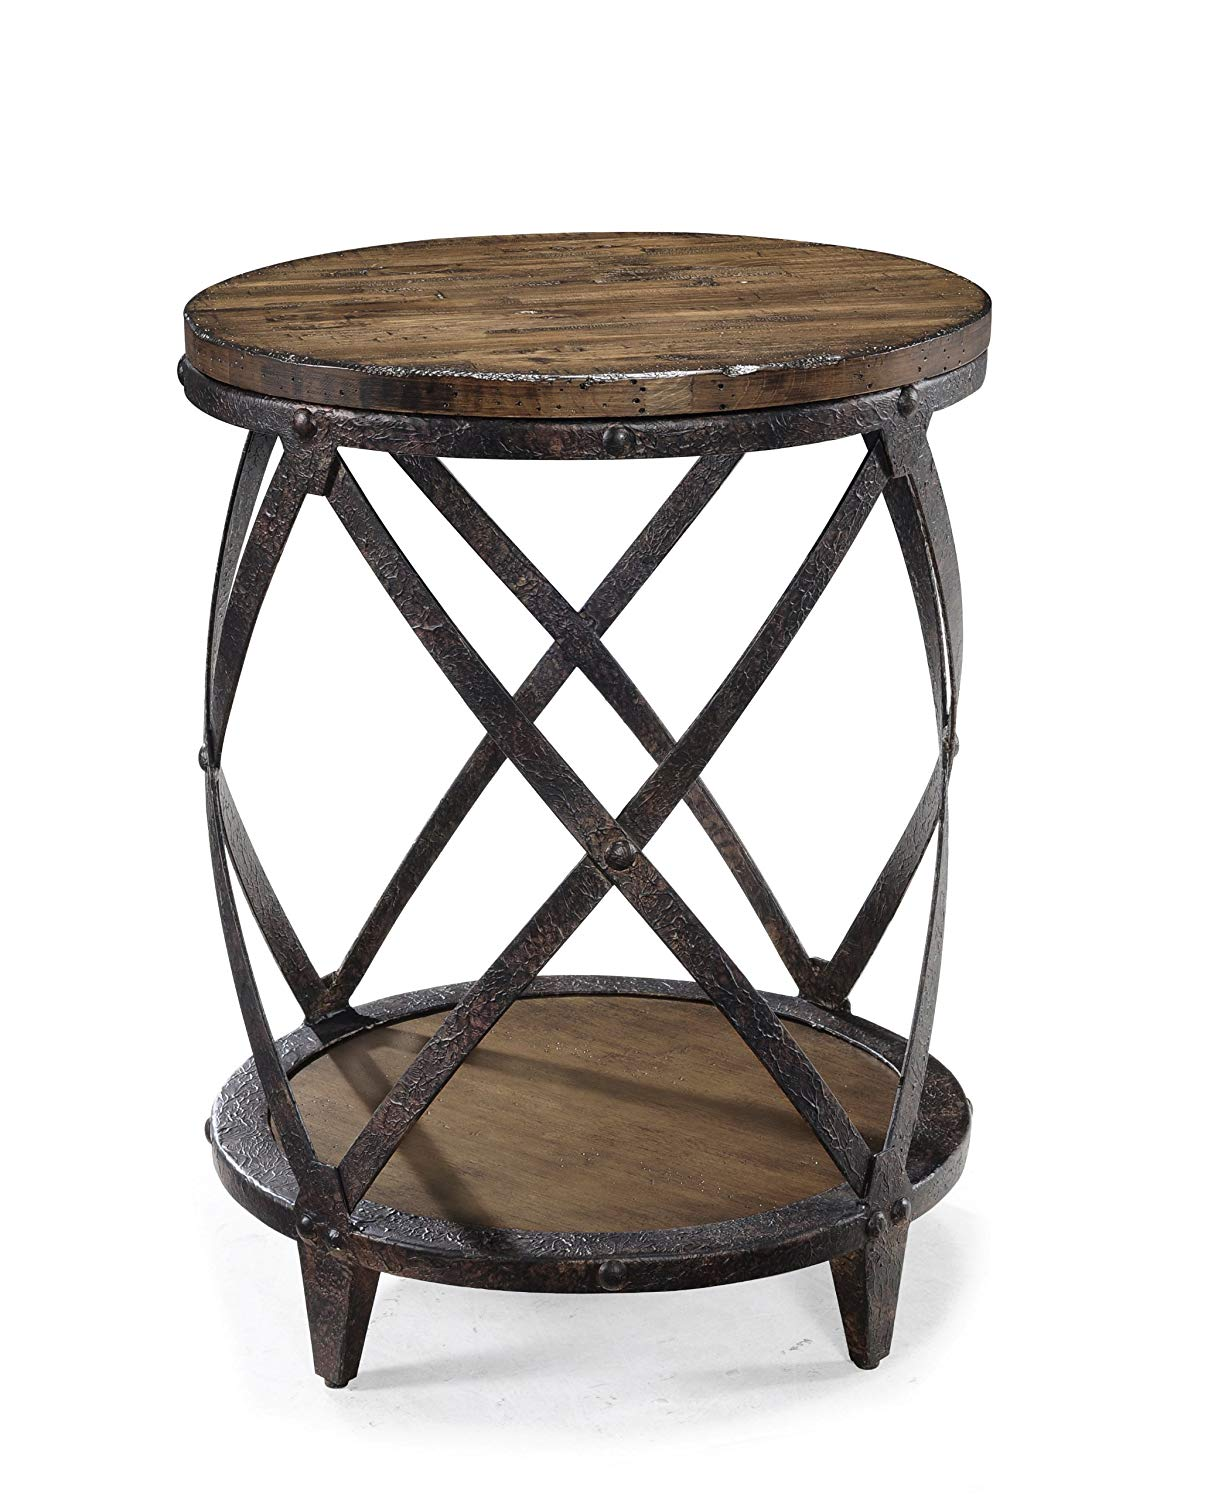 probably perfect nice antique wood end tables mira road magnussen pinebrook distressed natural pine round accent table kitchen dining small white metal ikea kids desk unfinished